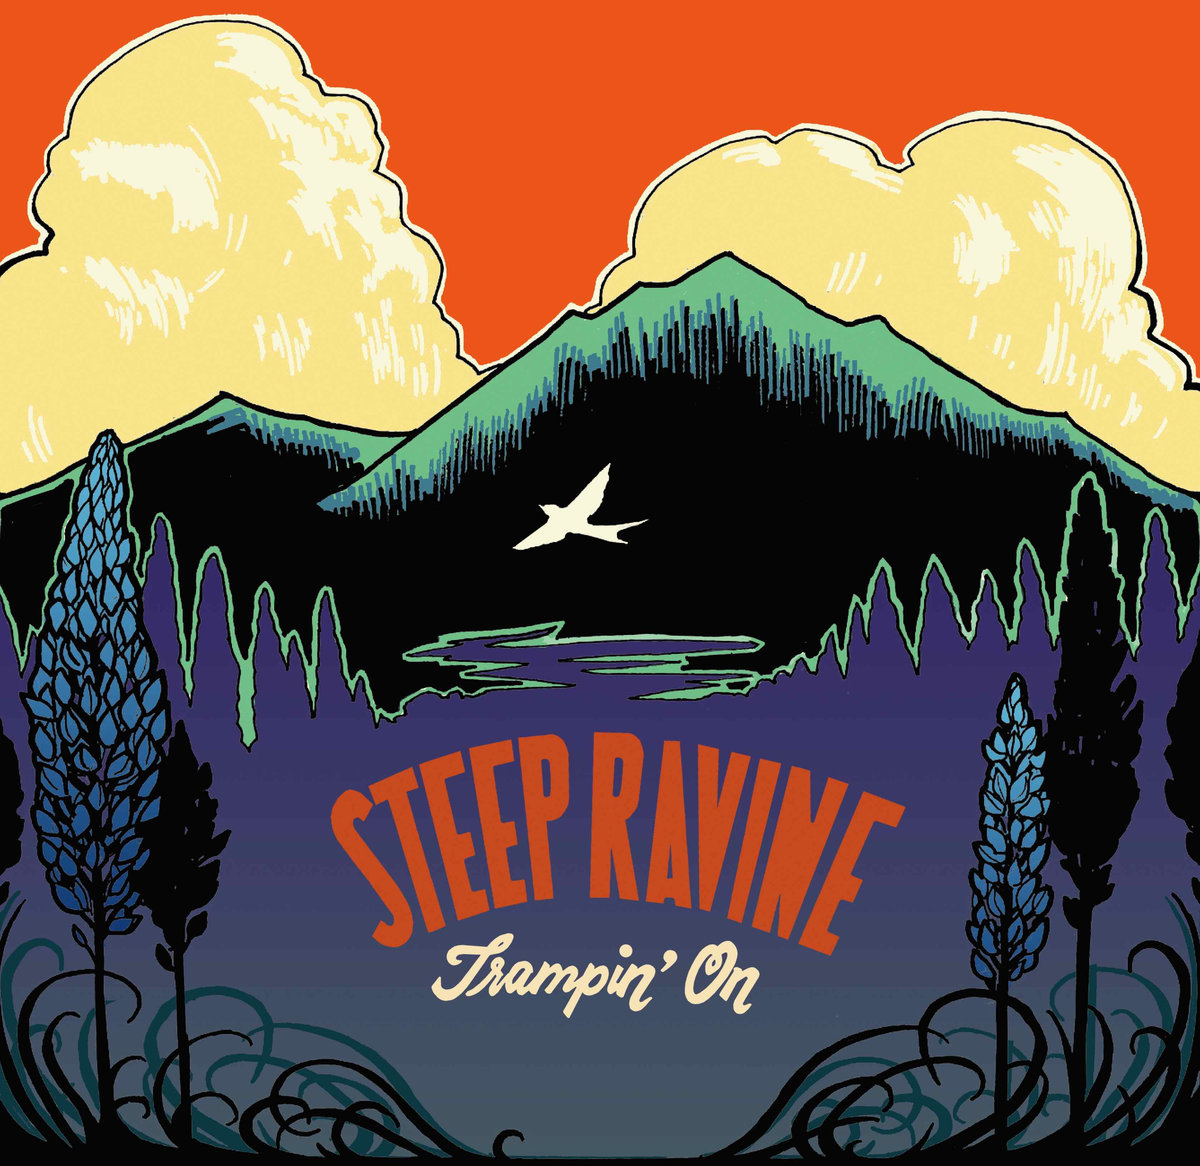 Steep Ravine Trampin On Cover.jpg